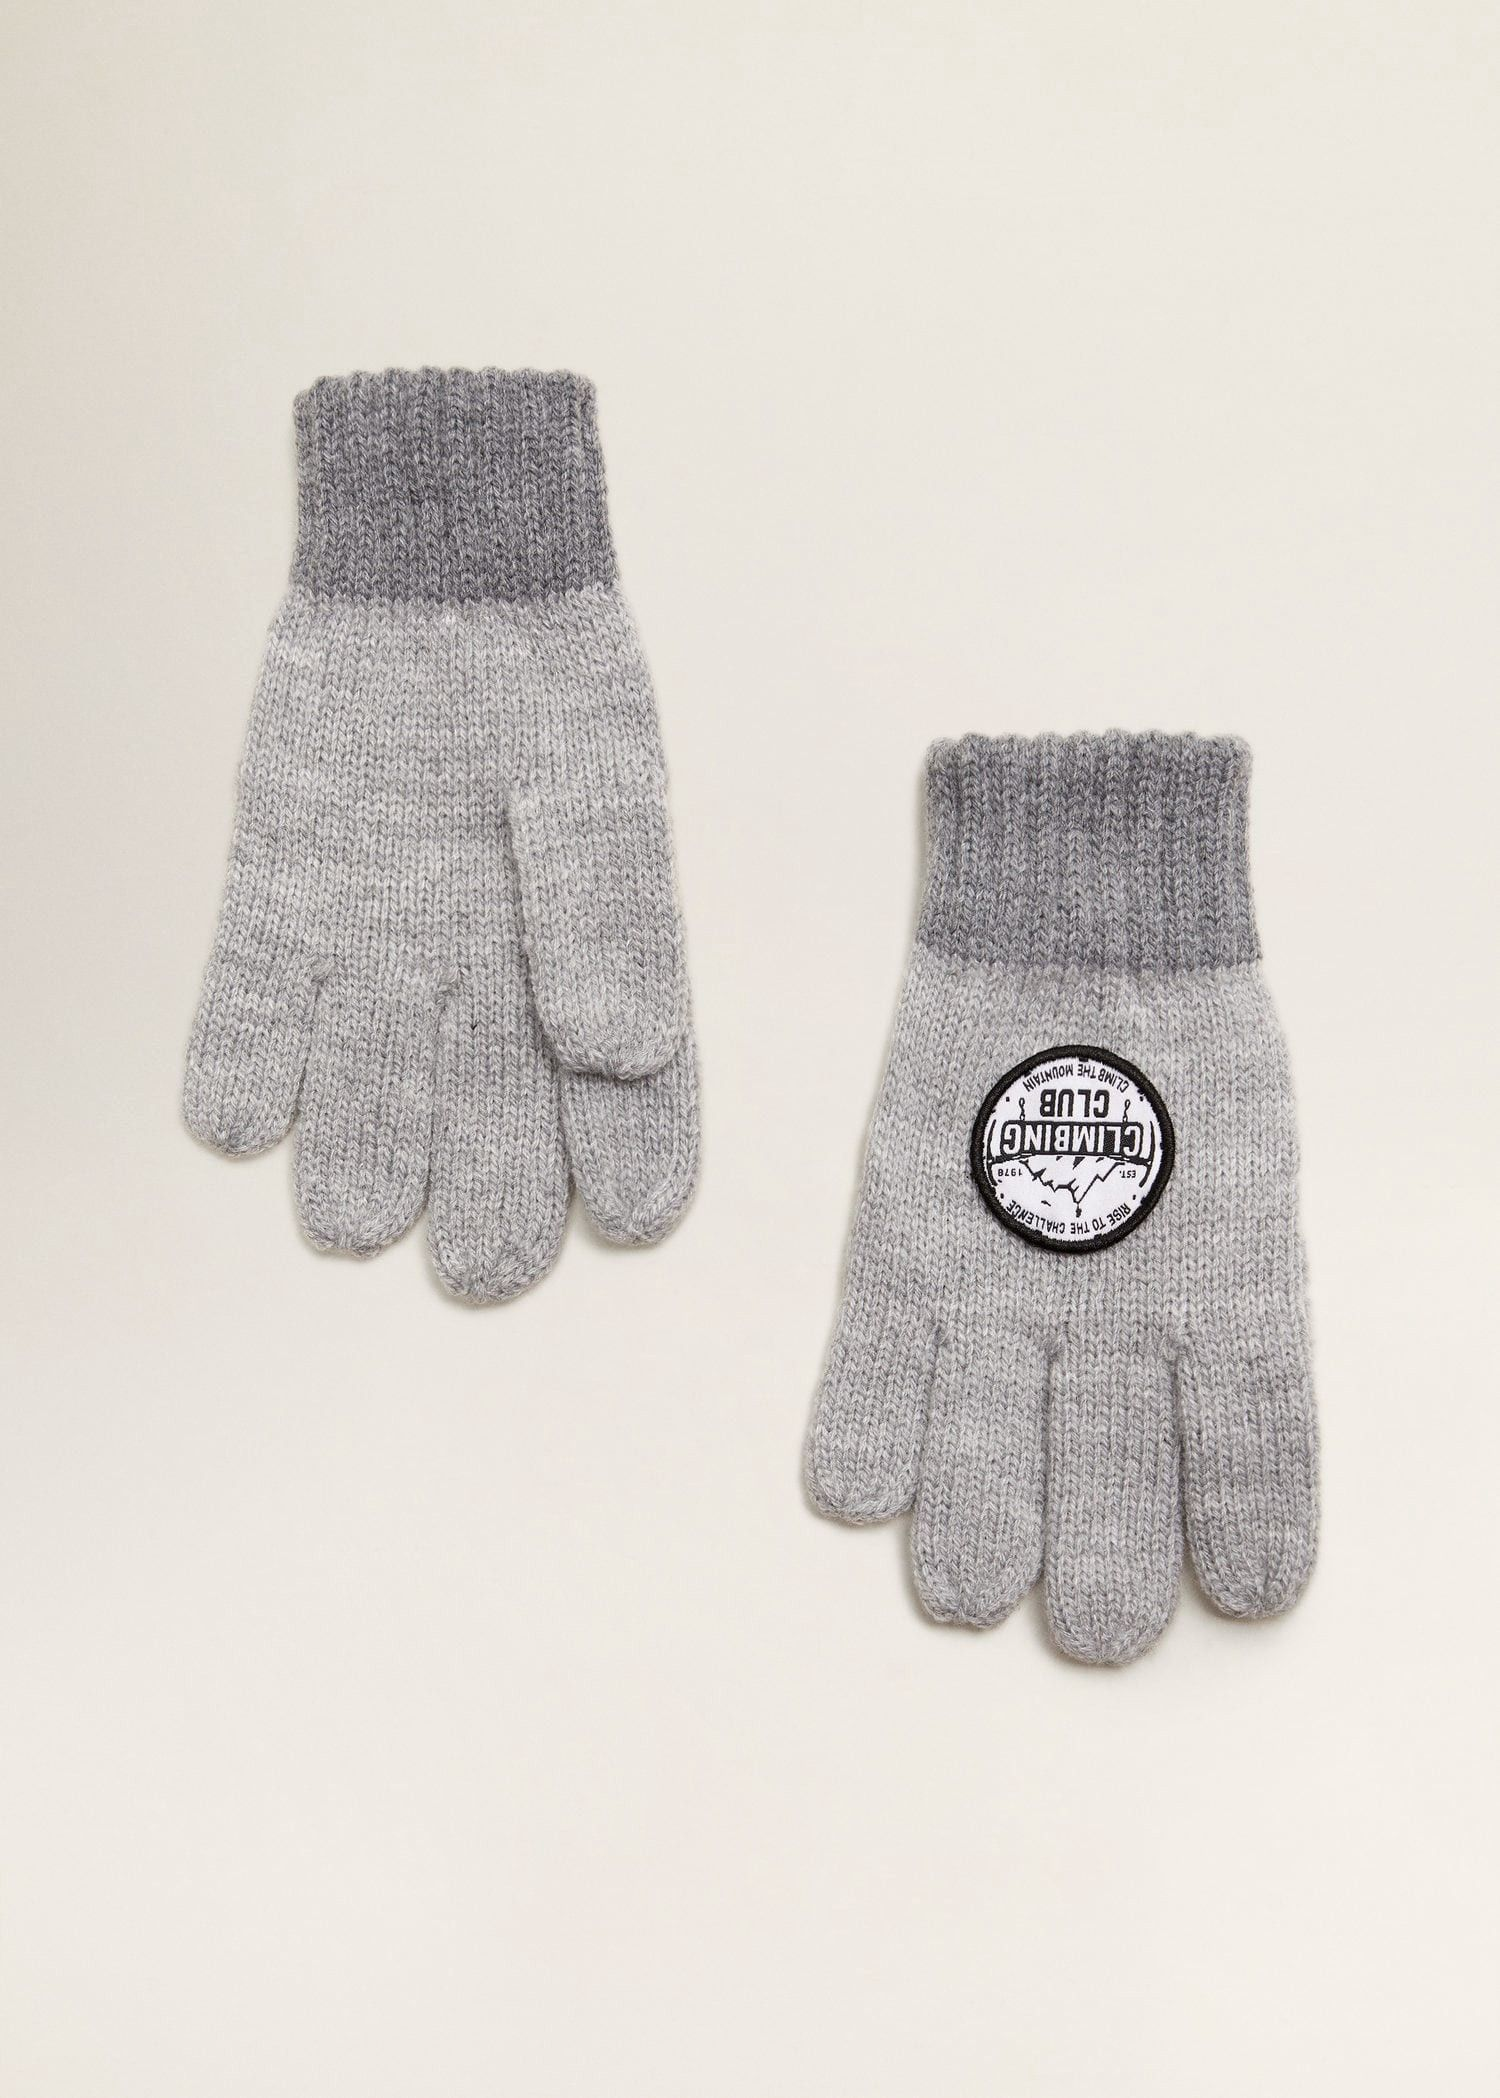 53ef73d80ee Mango Patches Knitted Gloves - S